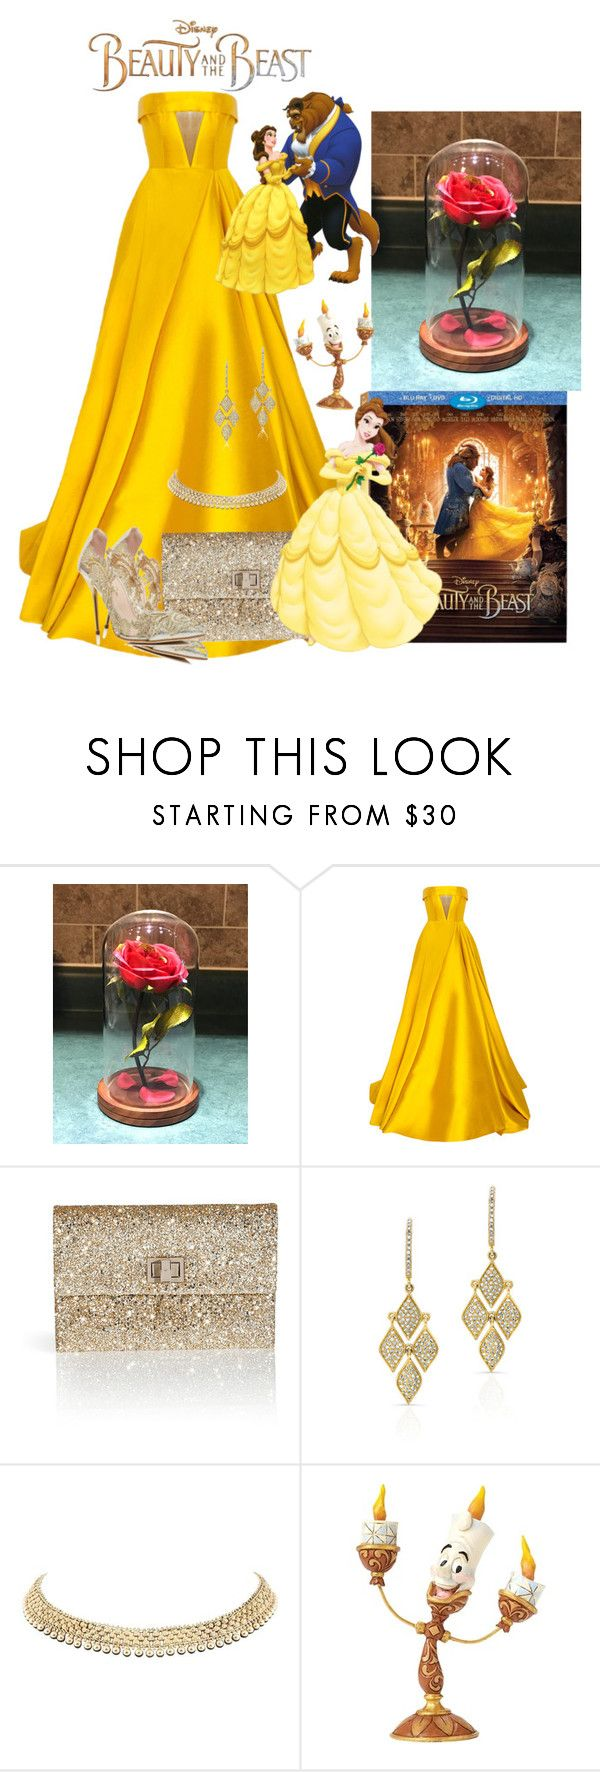 """Beauty and the Beast"" by mozzy18 ❤ liked on Polyvore featuring Disney, Alex Perry, Anya Hindmarch, Anne Sisteron, Oscar de la Renta, BeautyandtheBeast and contestentry"